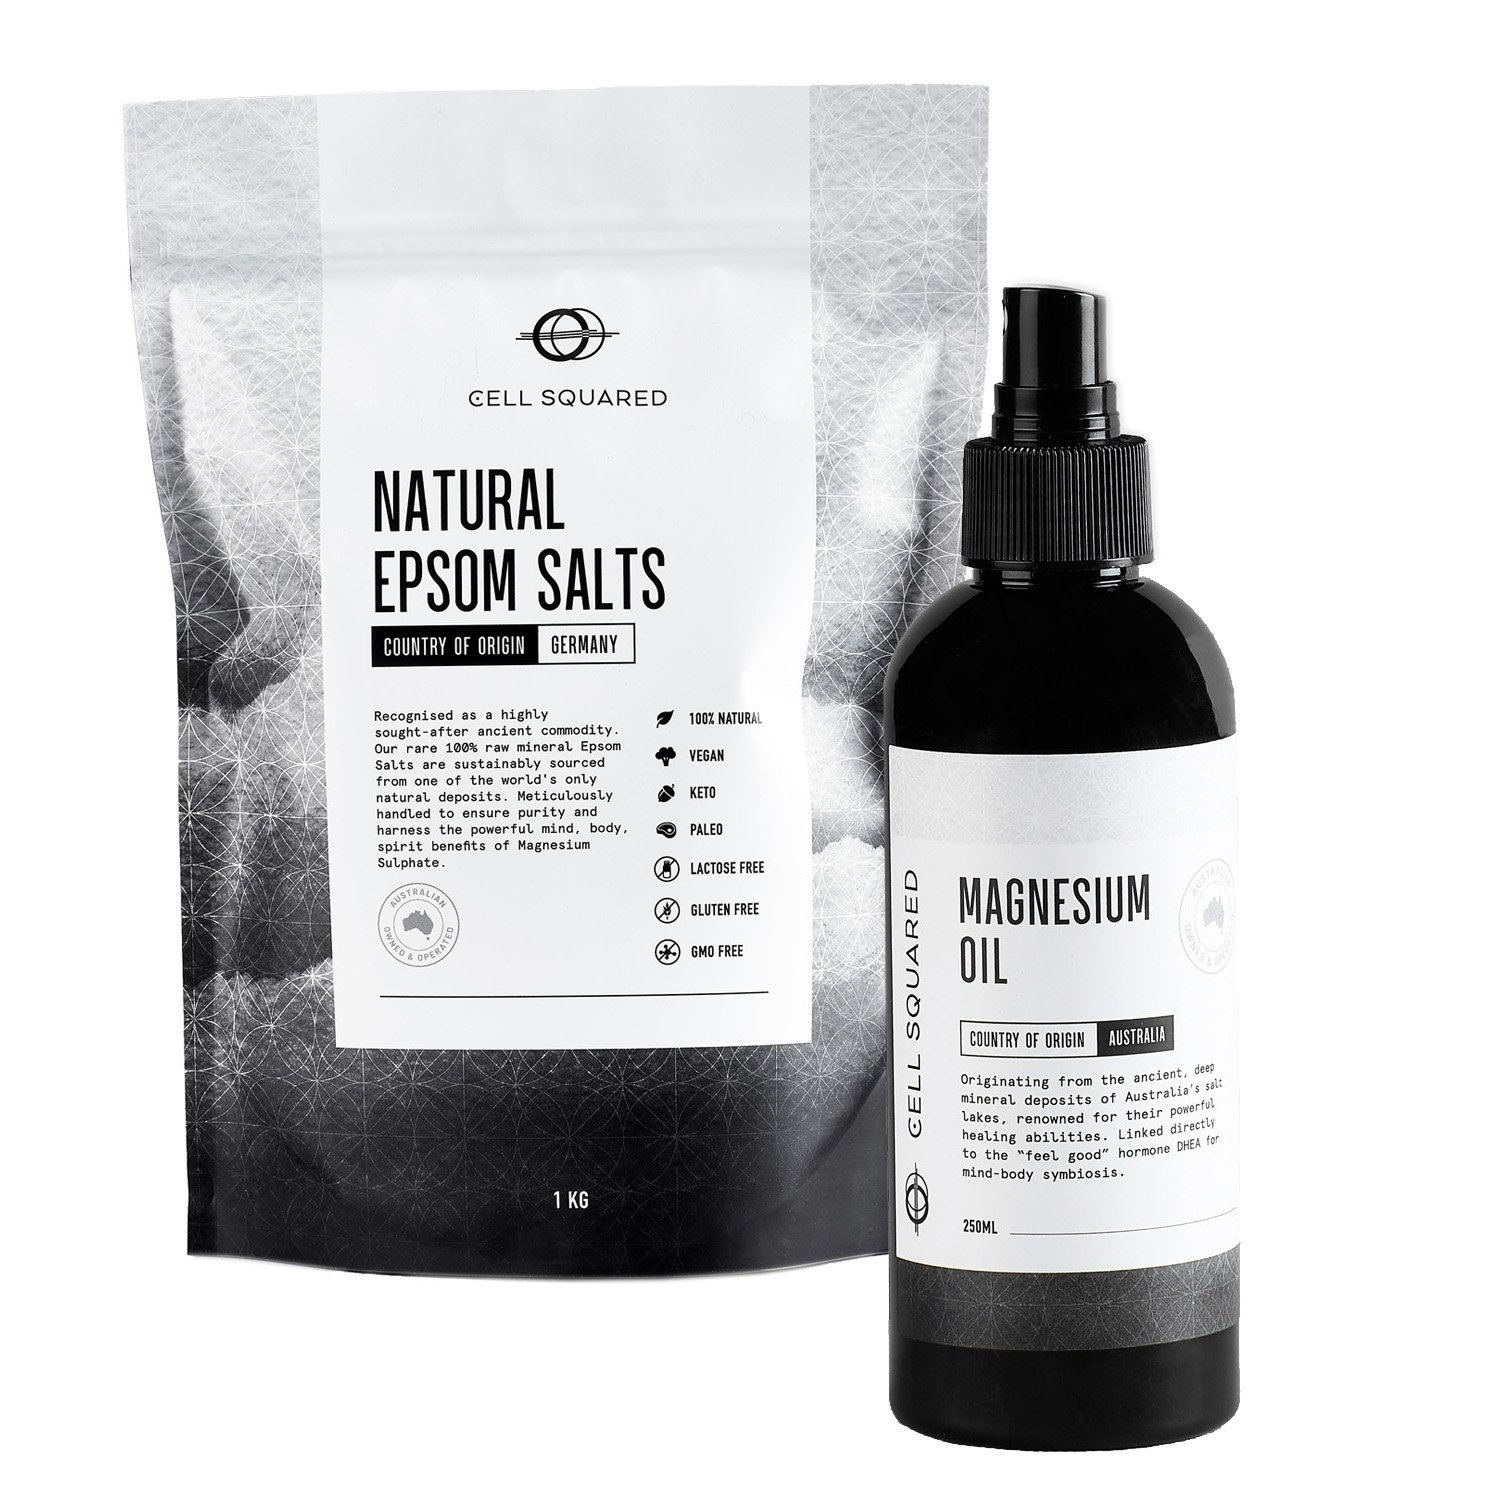 Cell squared epsom salts and magnesium oil replenish pack buy online at Yo Life